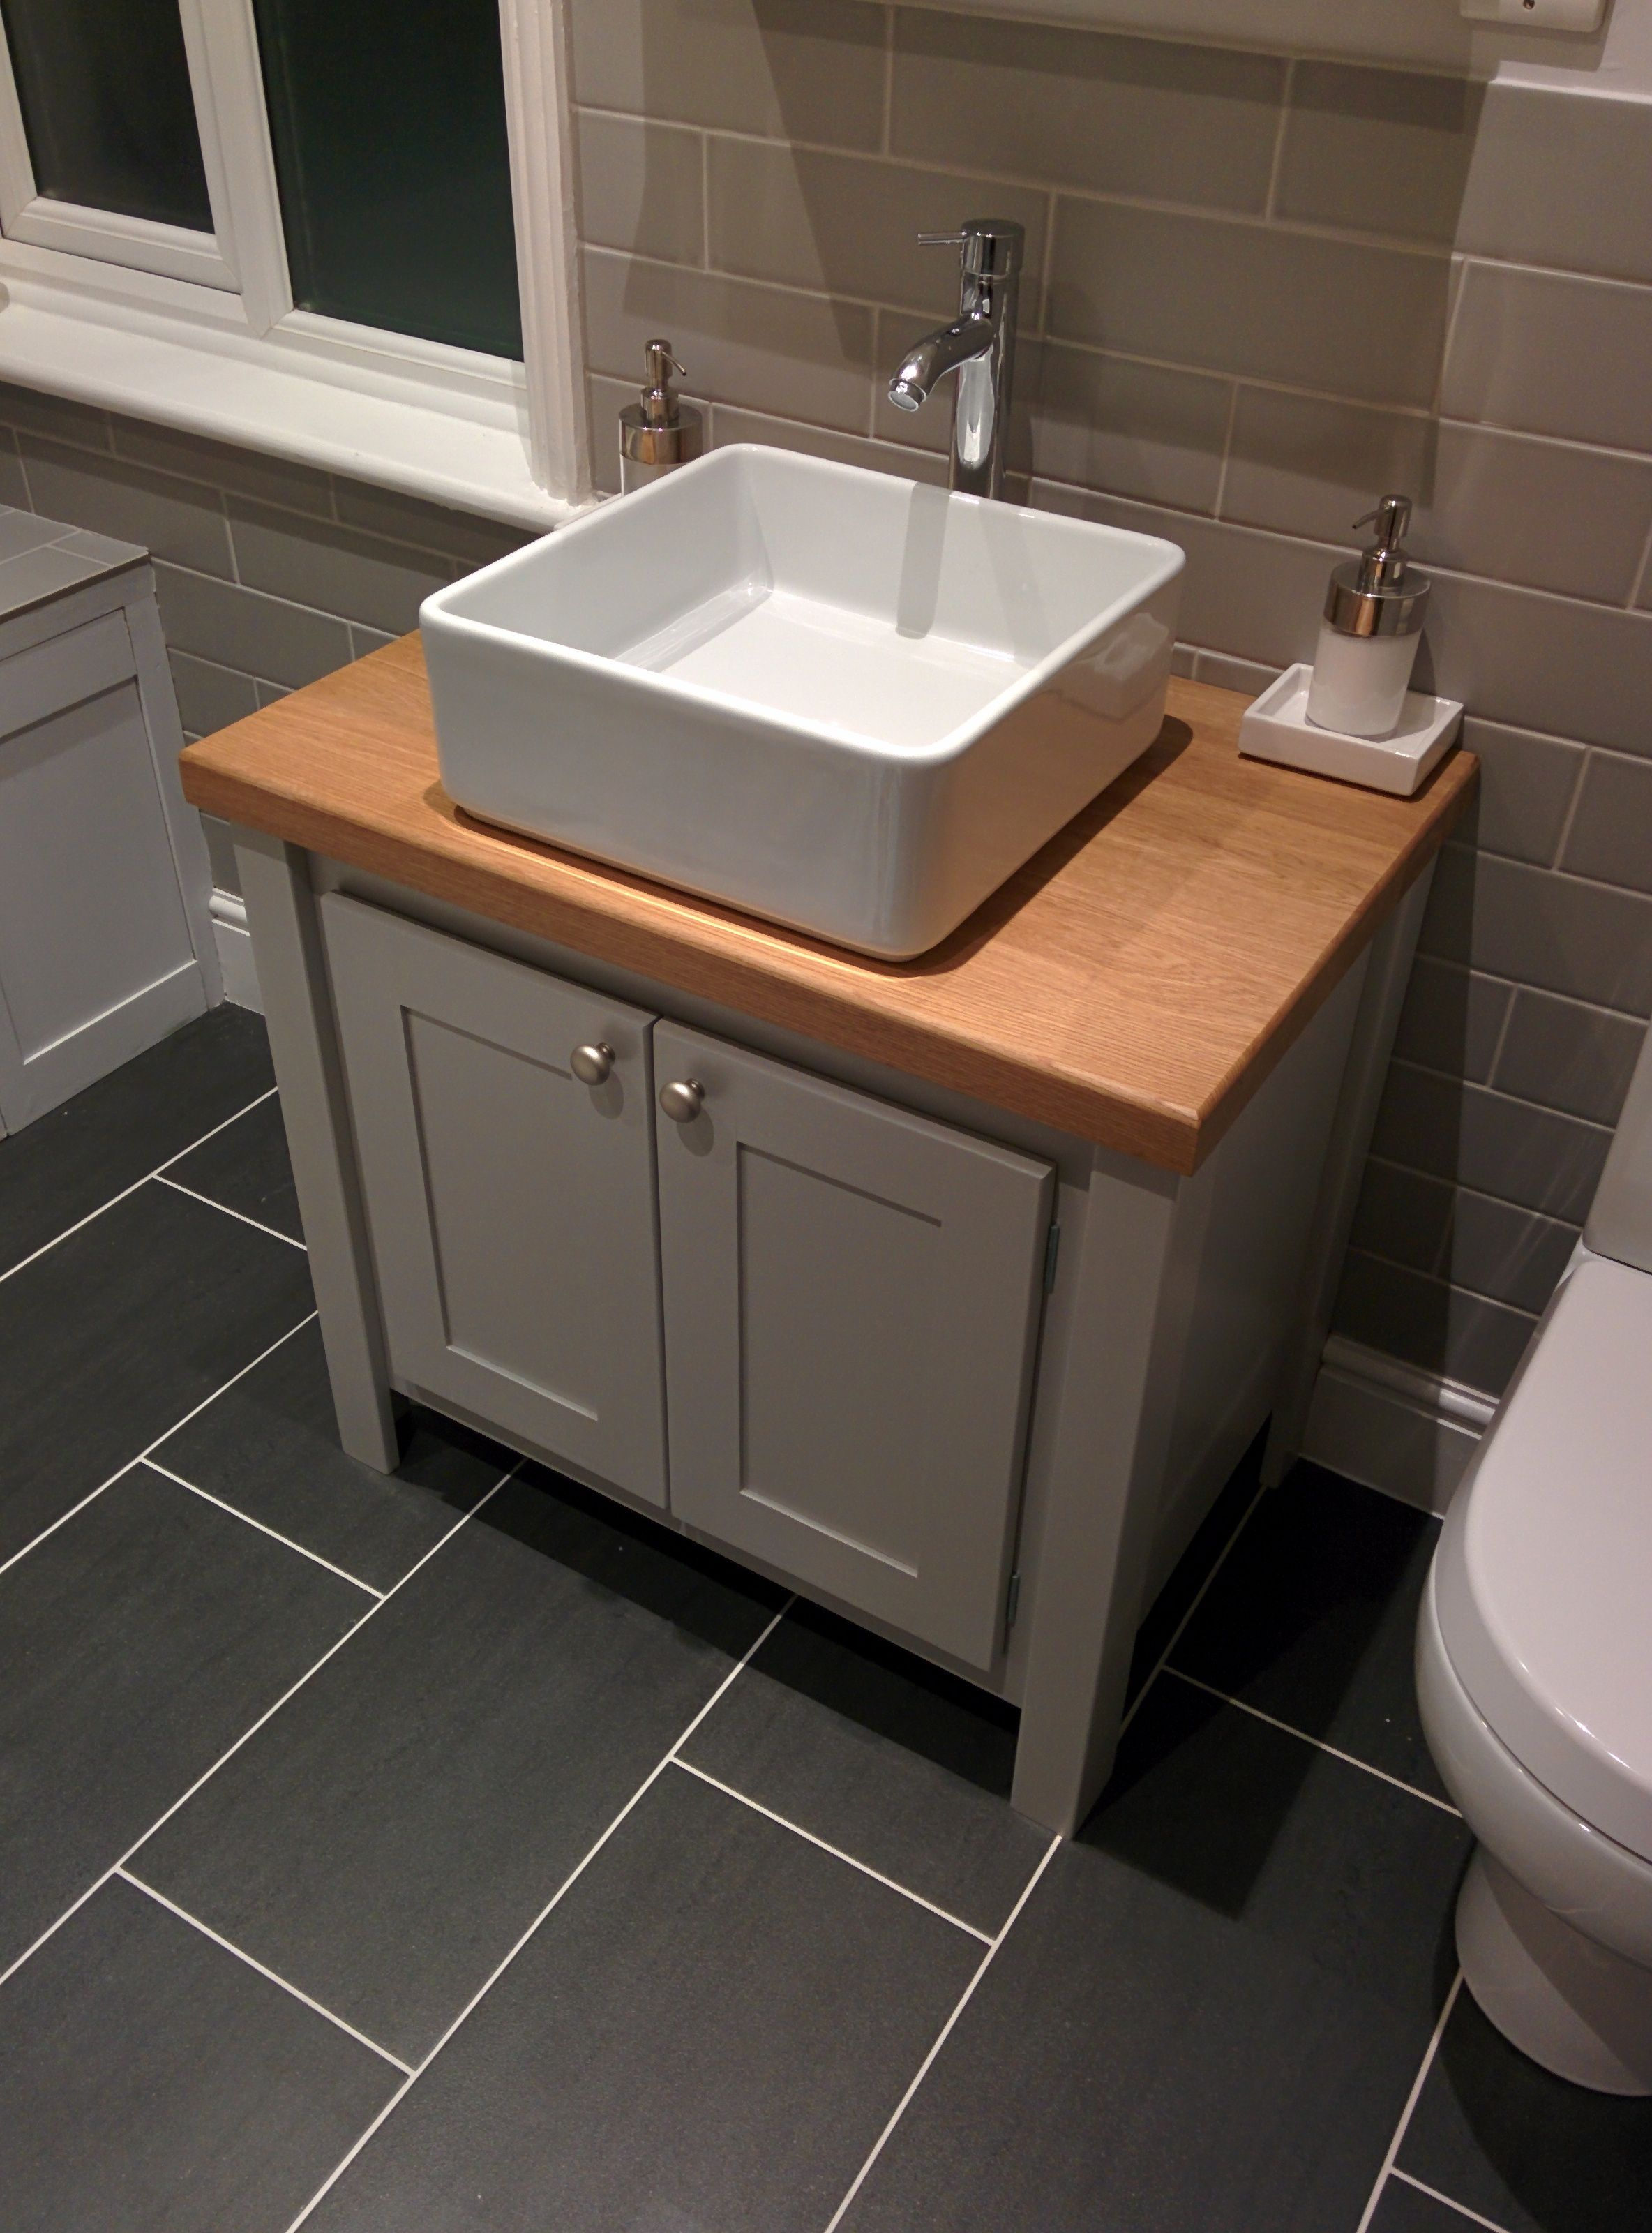 Best Photo Gallery For Website Manor house grey with a solid oak top vanity unit All our vanity units are